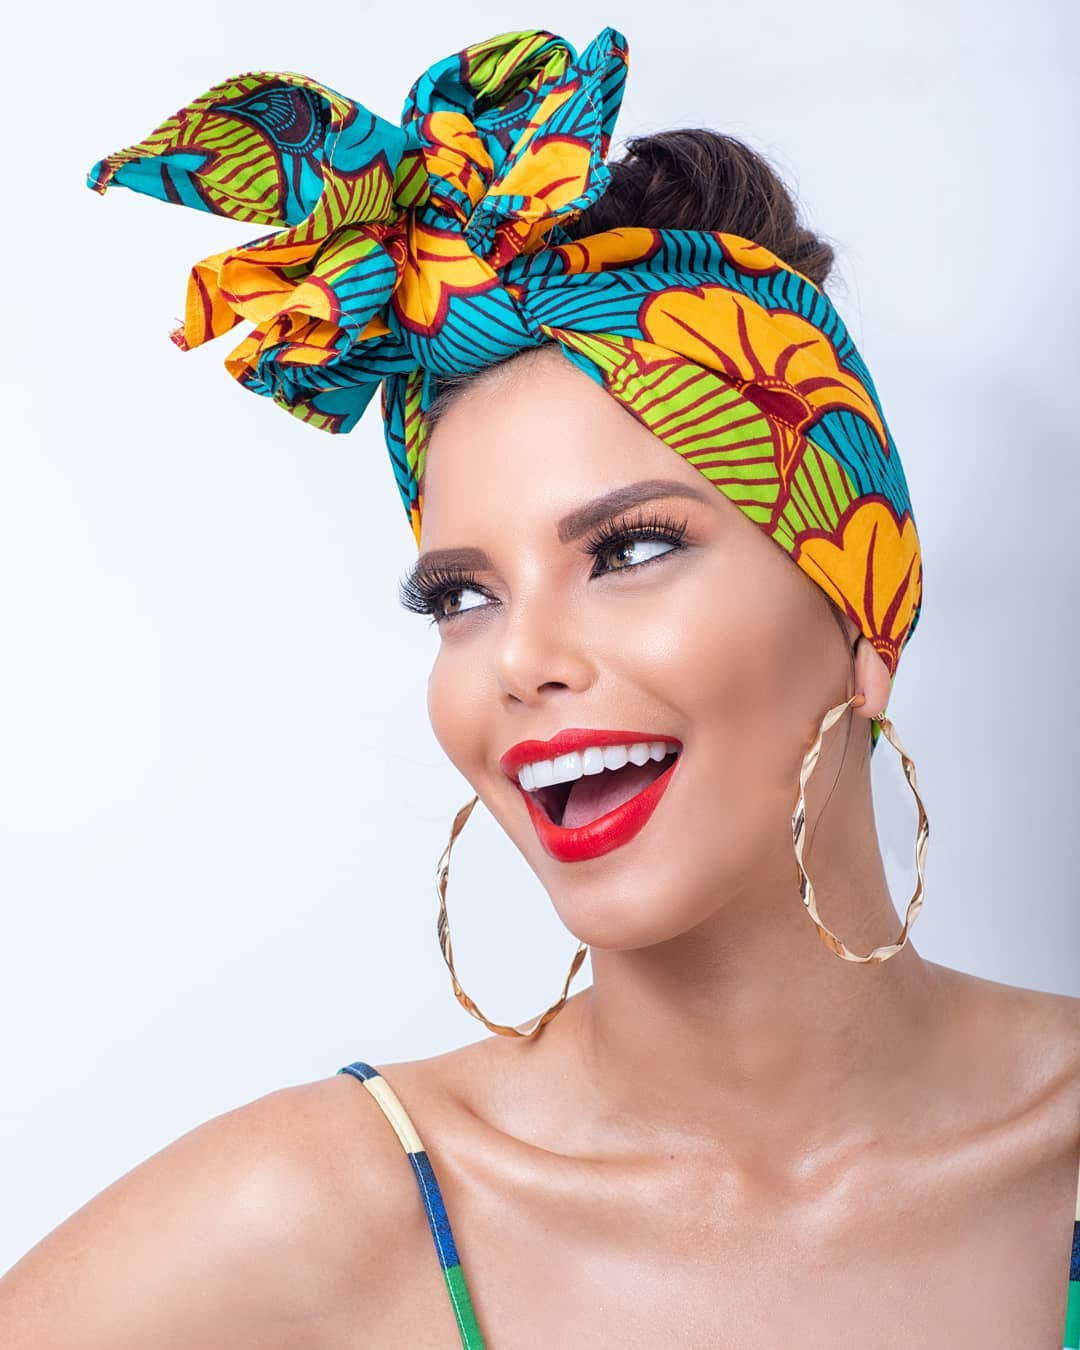 yaiselle tous, miss supranational colombia 2019. - Página 3 42941810